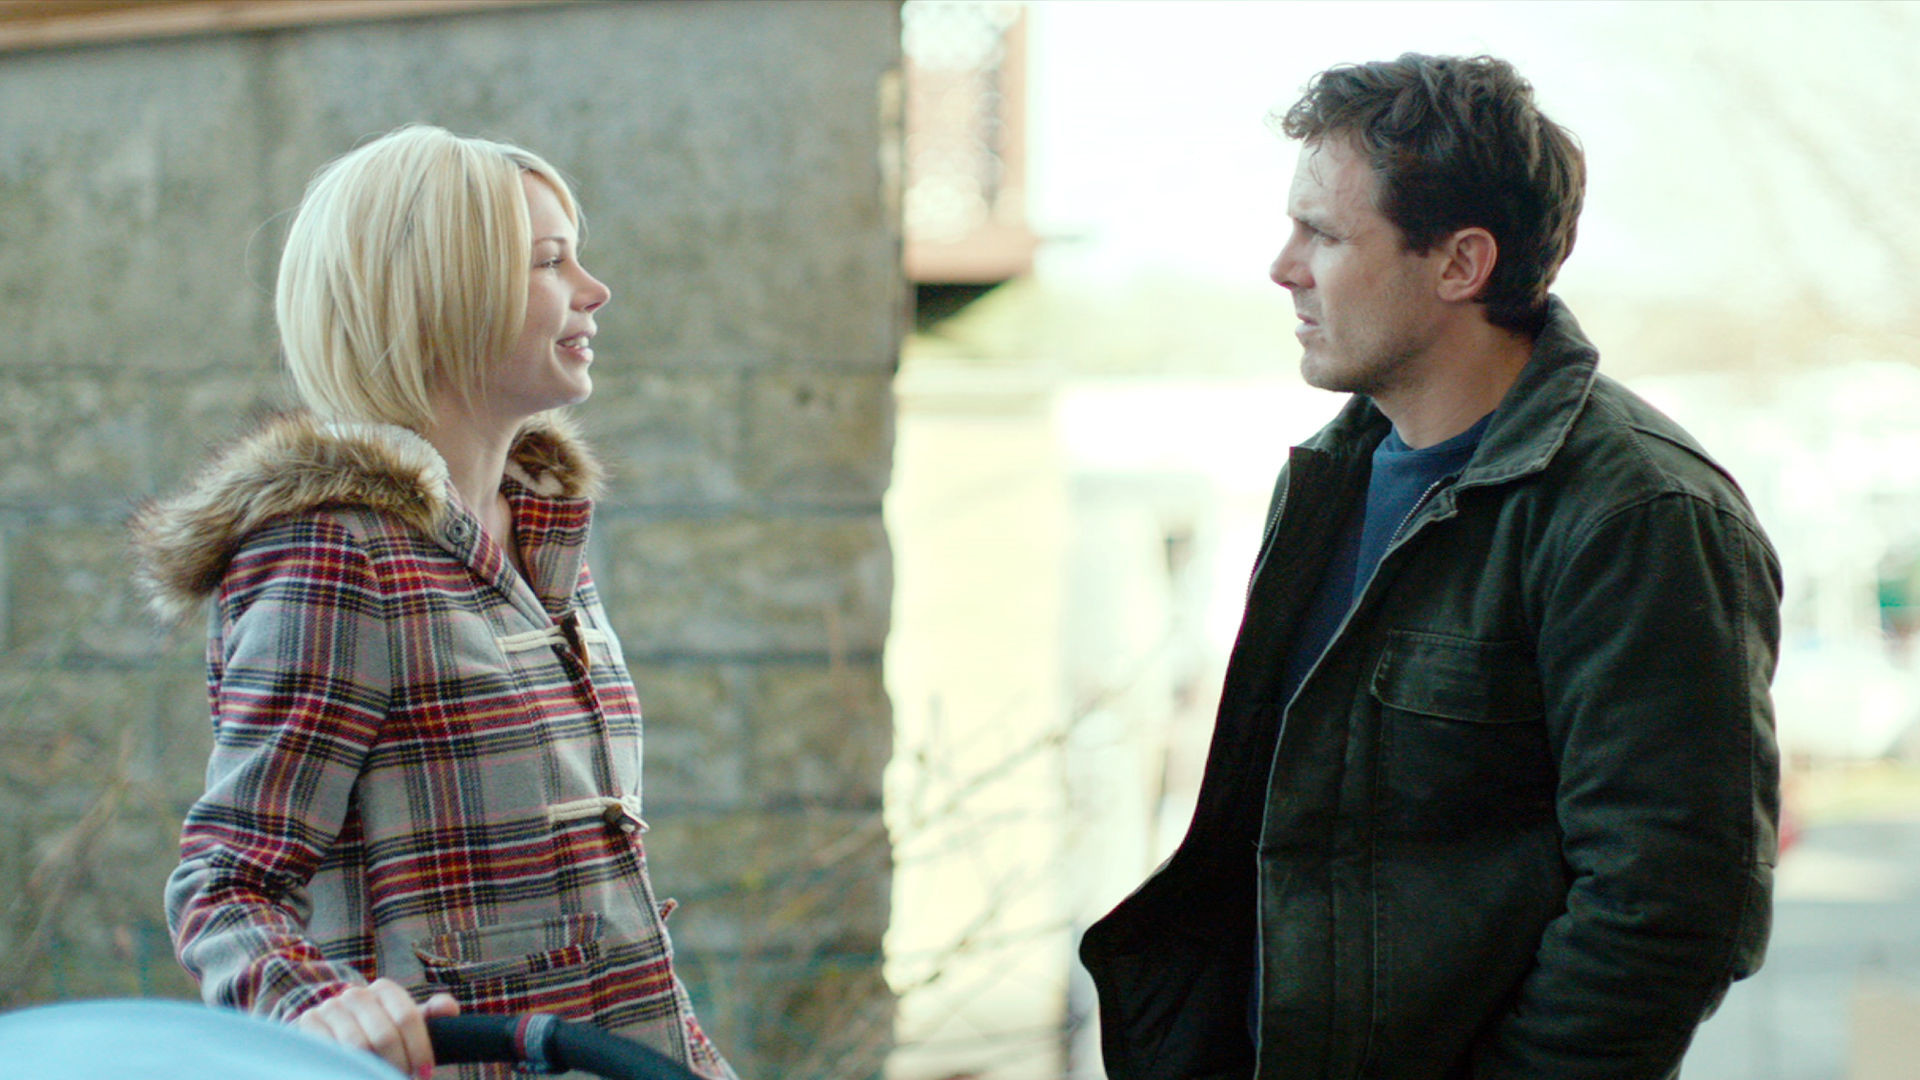 'Manchester by the Sea' is a drama film directed and written by Kenneth Lonergan.